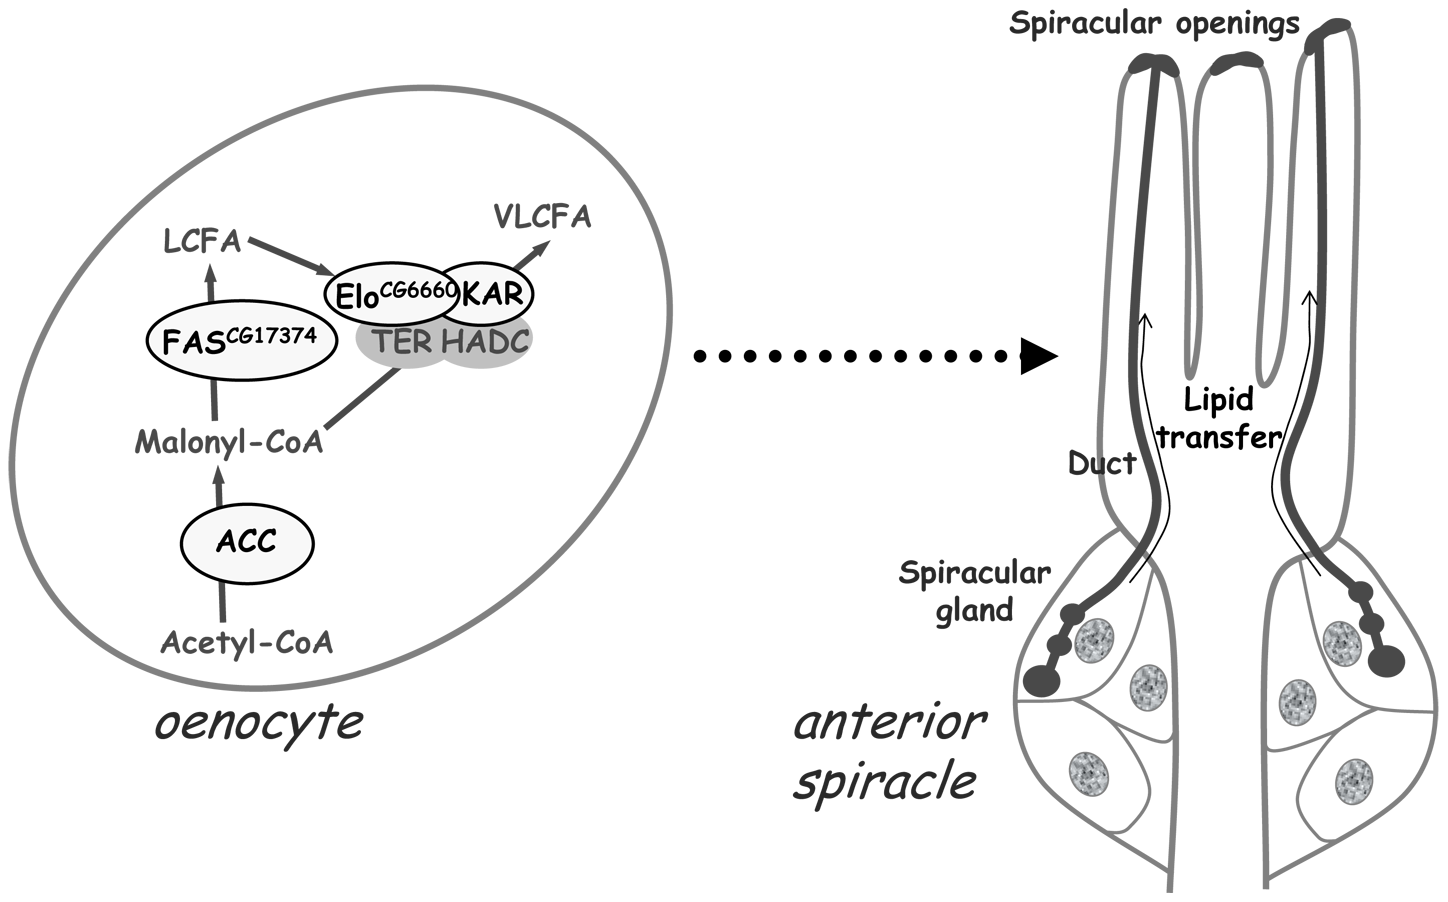 A VLCFA–dependent remote signal from the oenocytes controls lipid transfer within the spiracles.